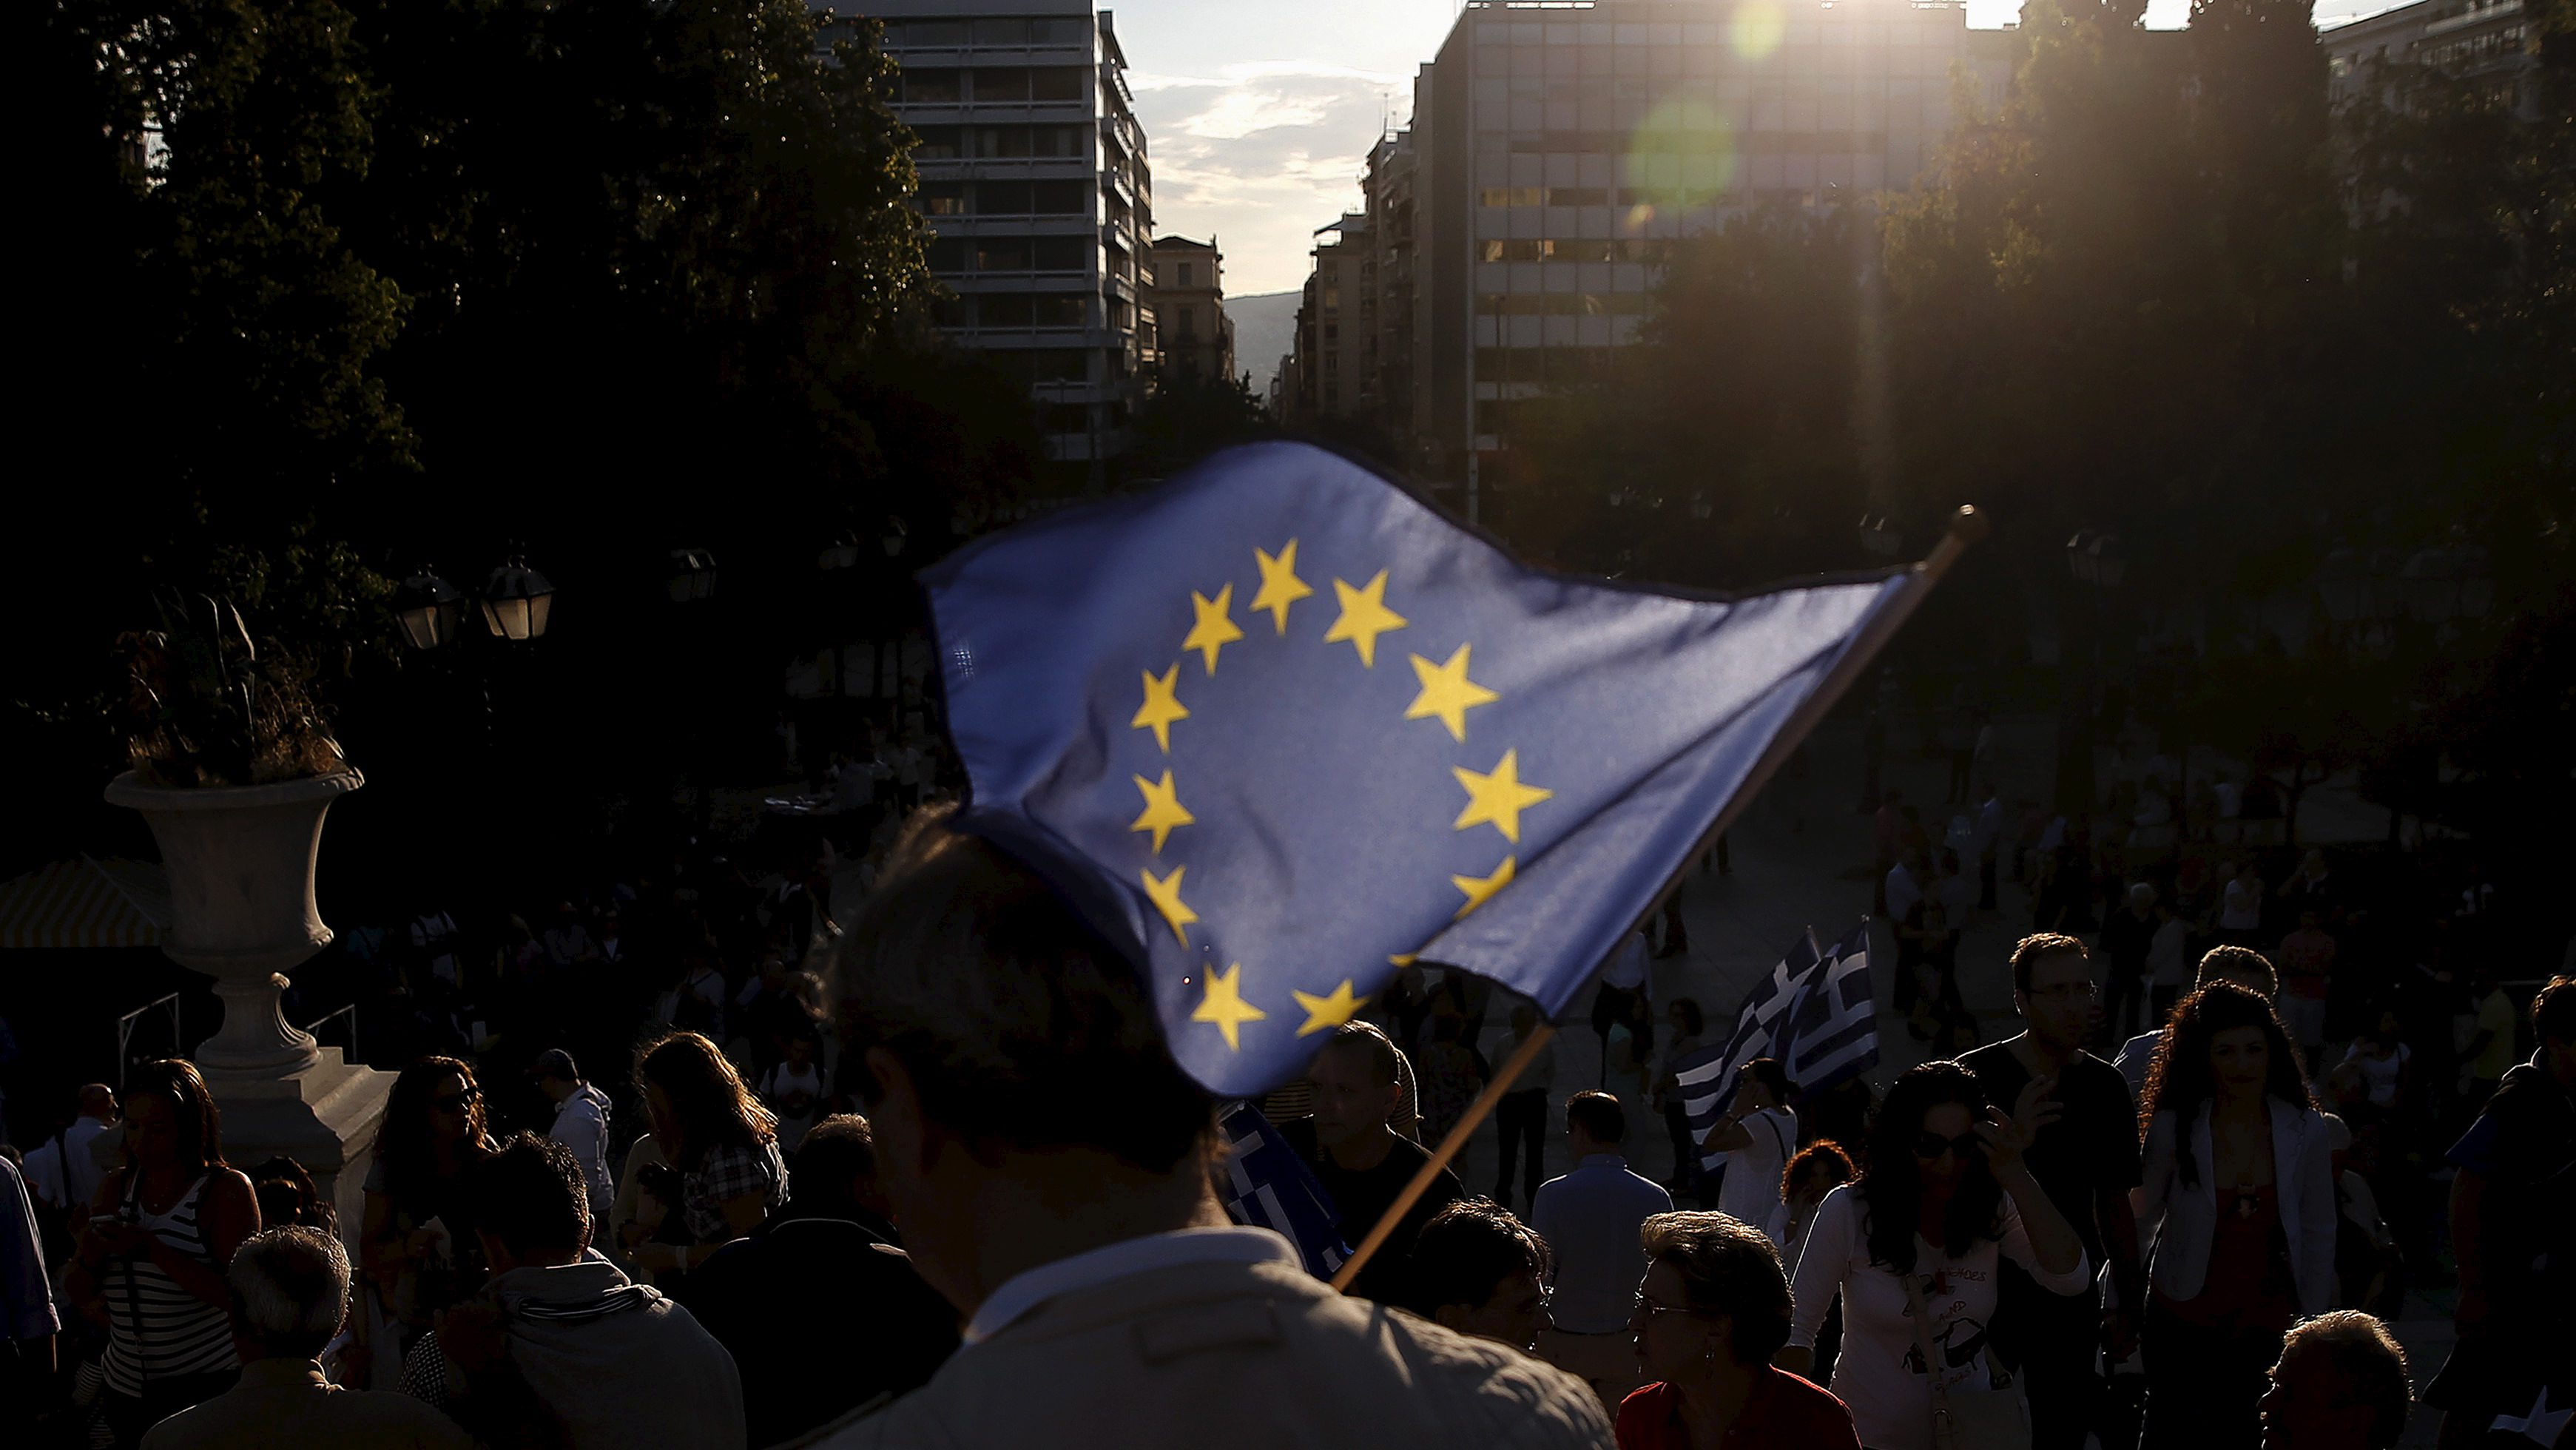 A pro-EU protester holds an European Union flag during a rally calling on the government to clinch a deal with its international creditors and secure Greece's future in the Eurozone, in Athens